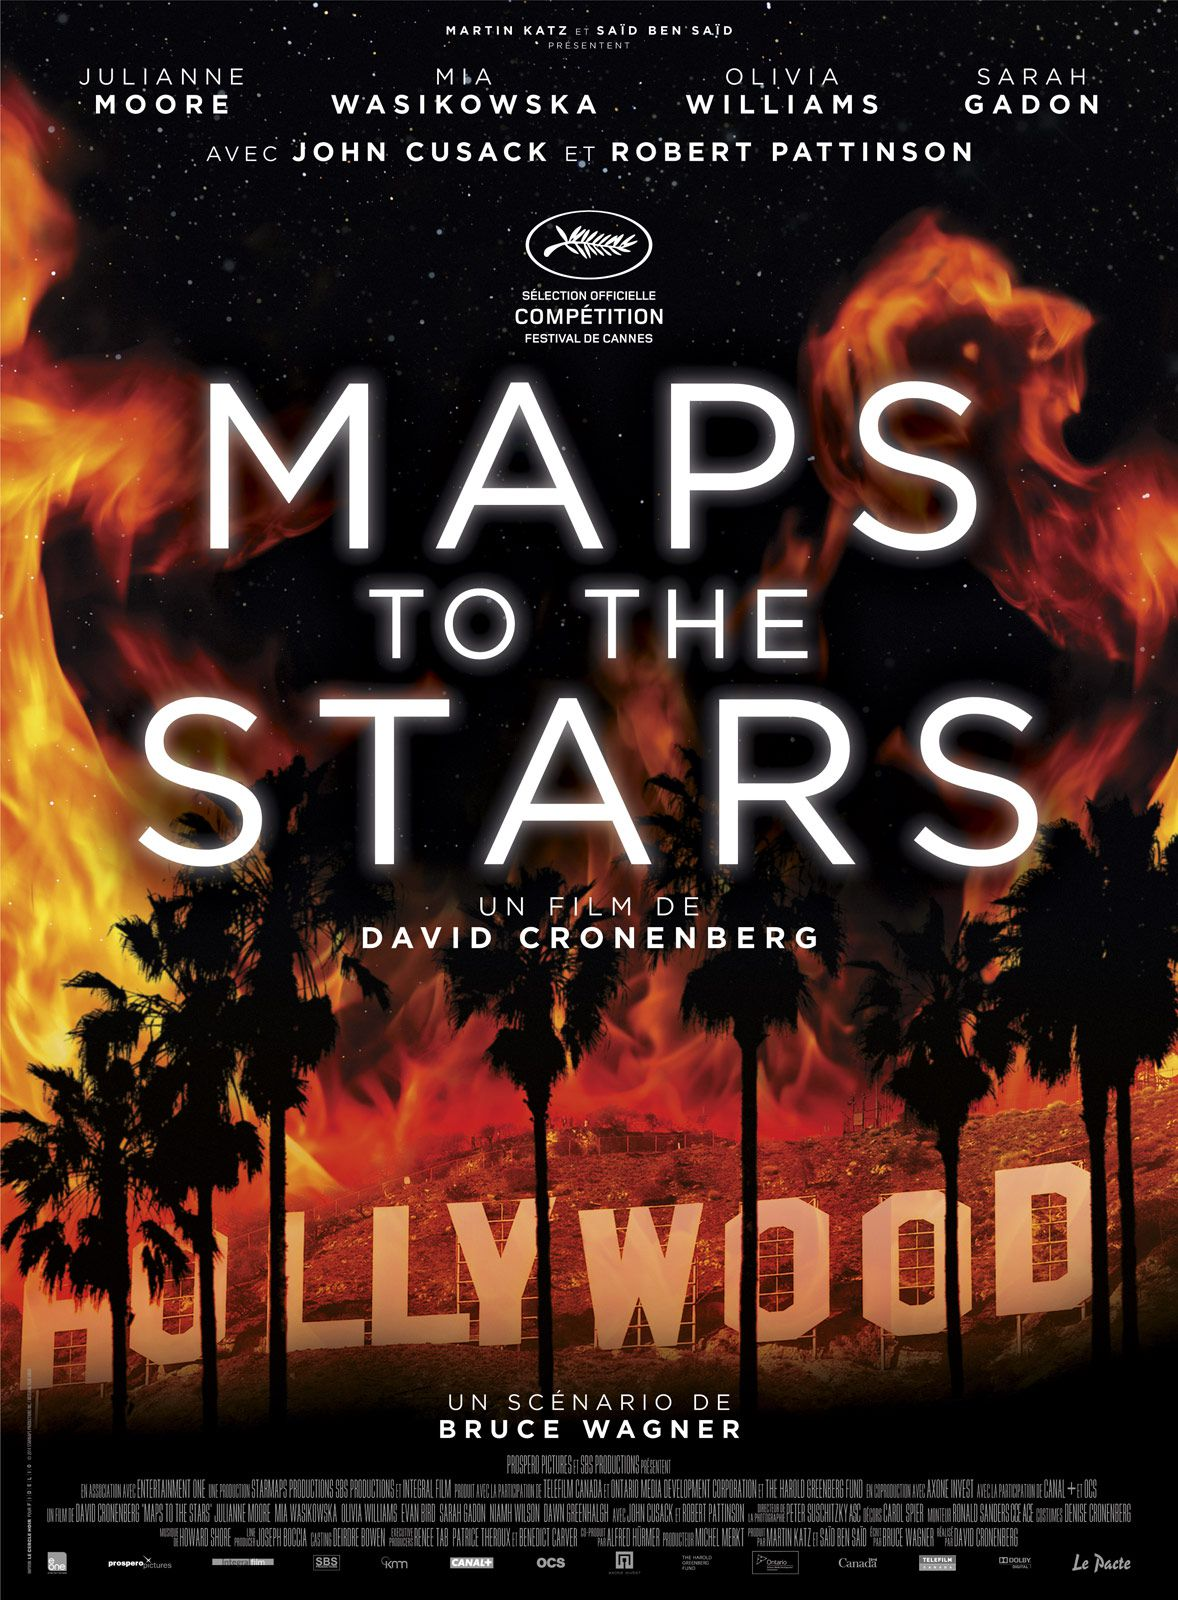 Maps to the Stars - Film (2014) streaming VF gratuit complet